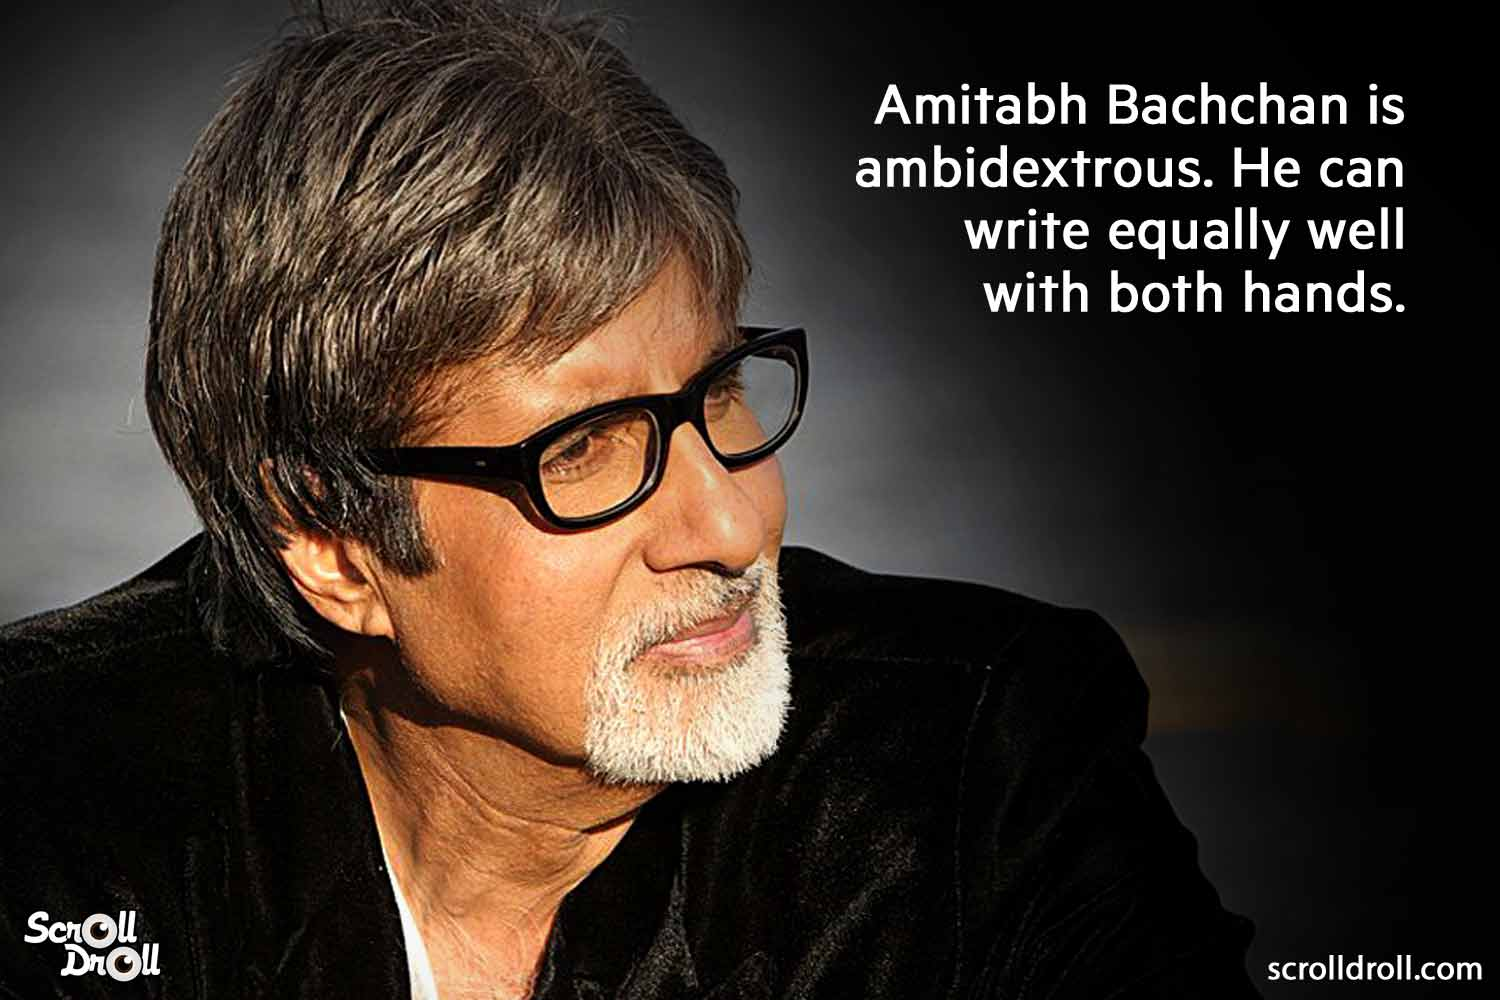 he is write from both hands-amitabh bachchan facts